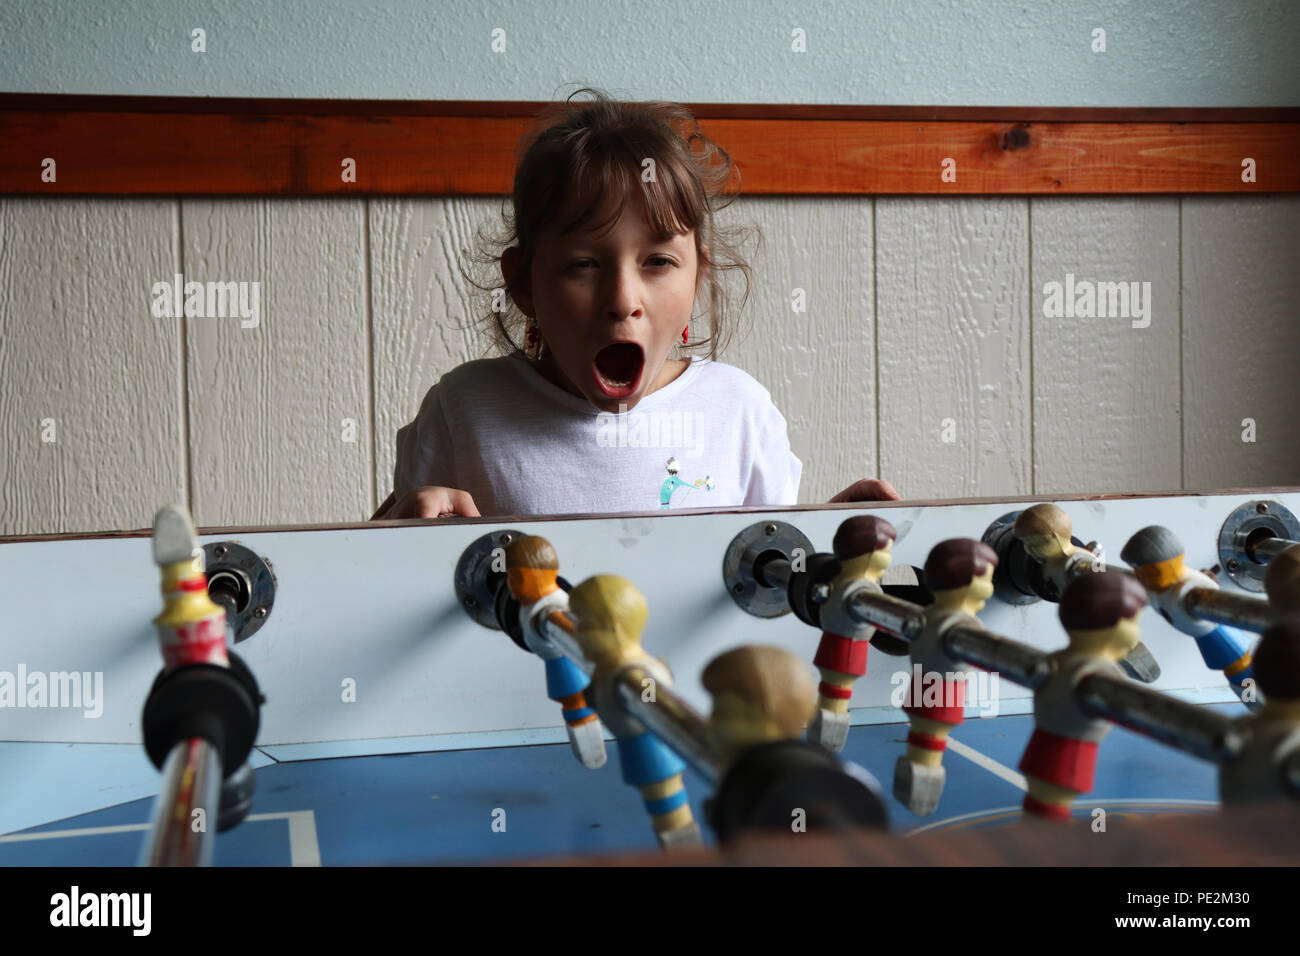 Little girl playing fussball table - Stock Image